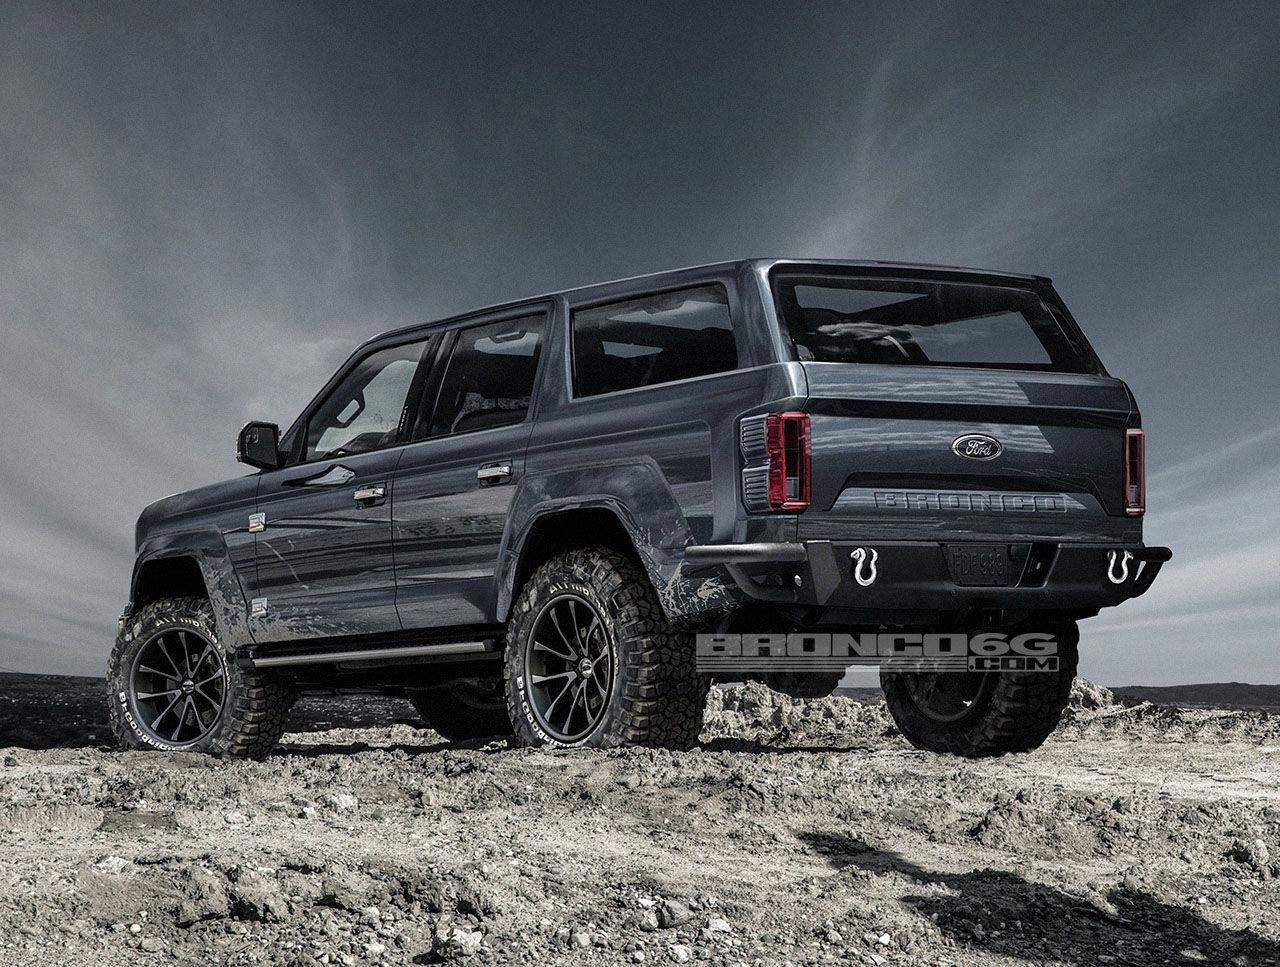 Pin By Angie Ingle On Bronco In 2020 Ford Bronco Concept Ford Bronco 2019 Ford Bronco